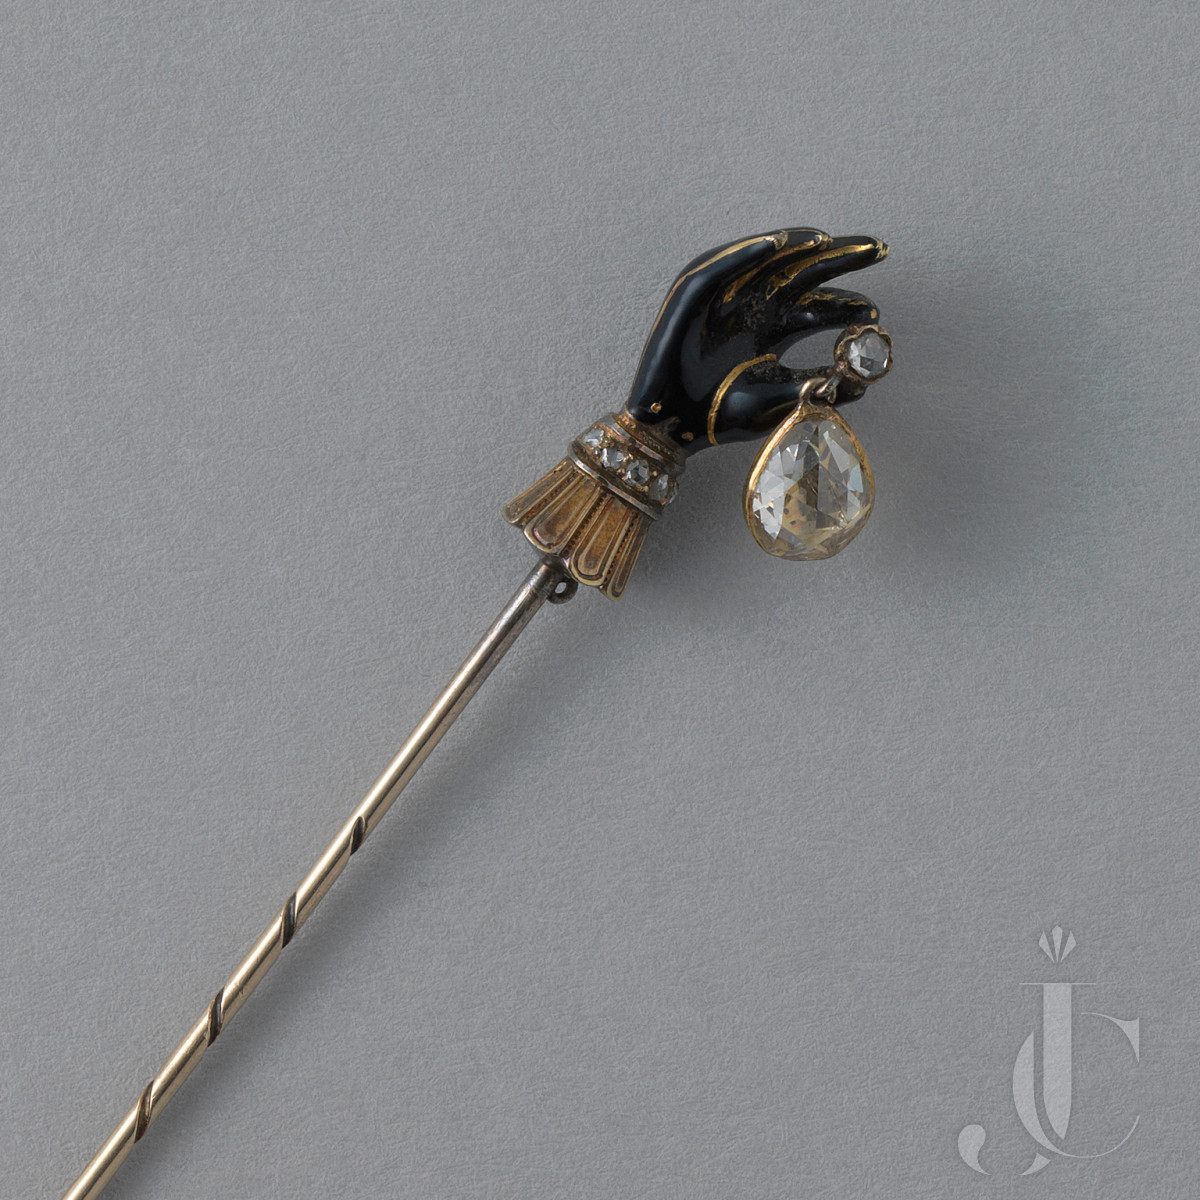 GOLD AND SILVER GLOVED HAND PIN